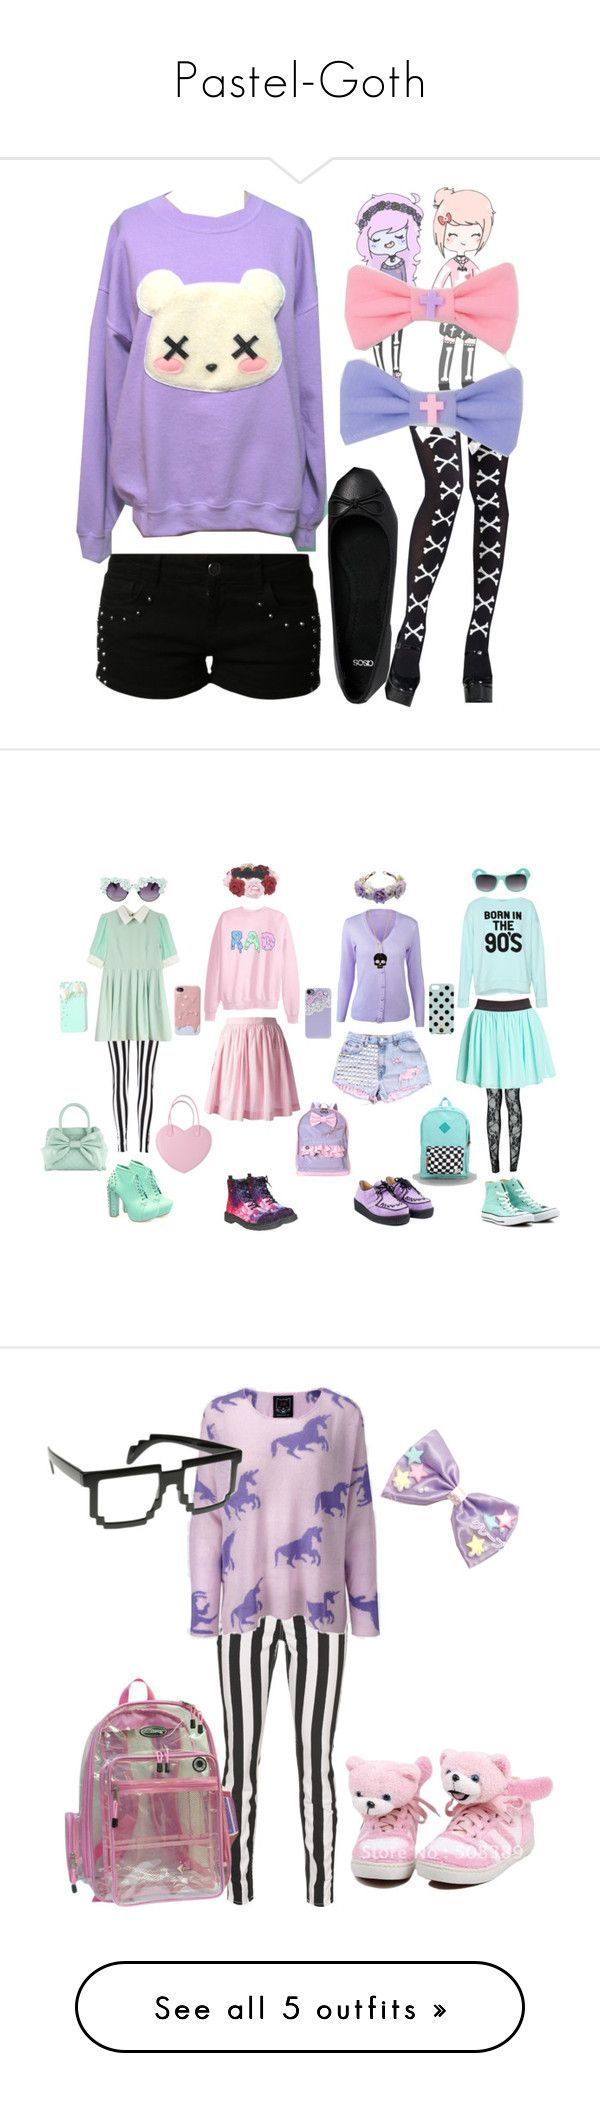 """""""Pastel-Goth"""" by gaara406 ❤️ liked on Polyvore featuring even&odd, ASOS, claire's, Gasoline Glamour, Boohoo, Wet Seal, Labour of Love, Forever 21, Pull&Bear and Converse"""